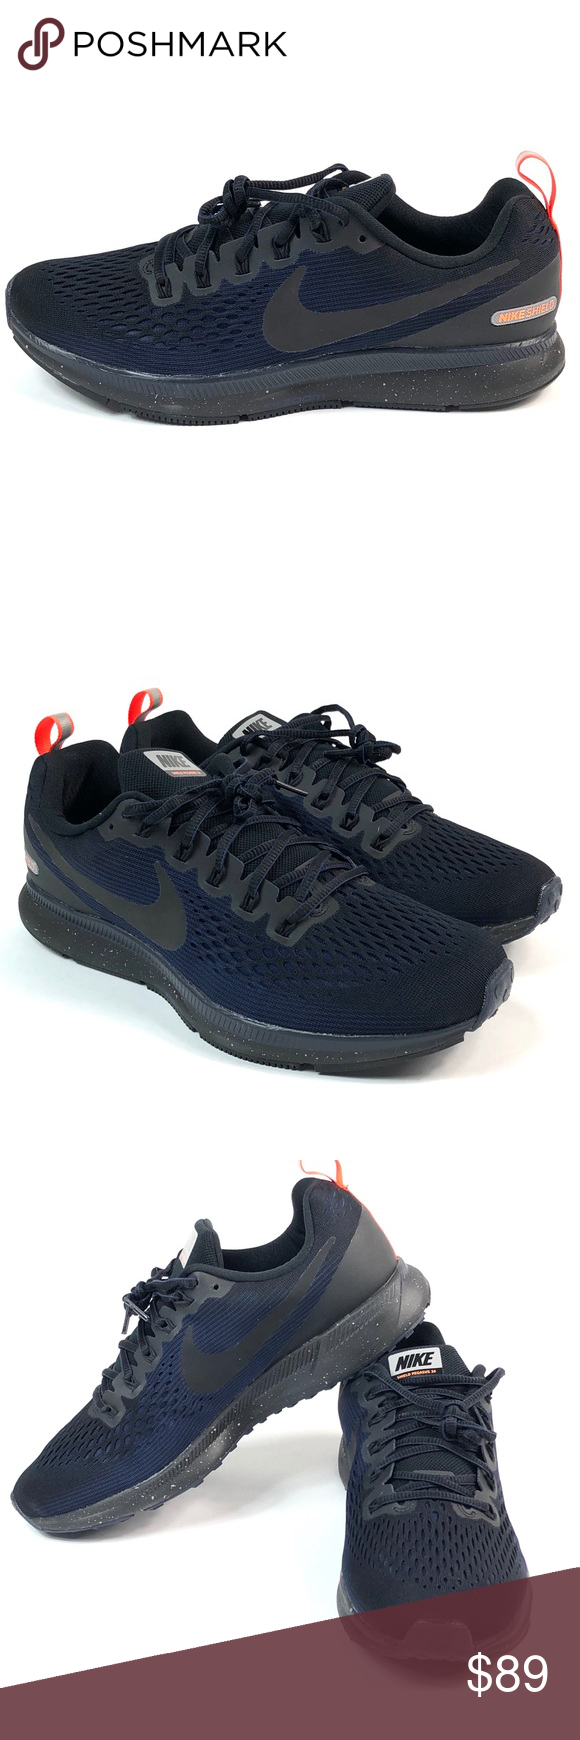 869ac6c17f8 Nike Zoom Air Pegasus 34 Shields Size 11 Mens New Nike Air Zoom Pegasus 34  Shield Size 11 907327-001 Running Shoes Black Obsidian New with box MSRP   135 ...